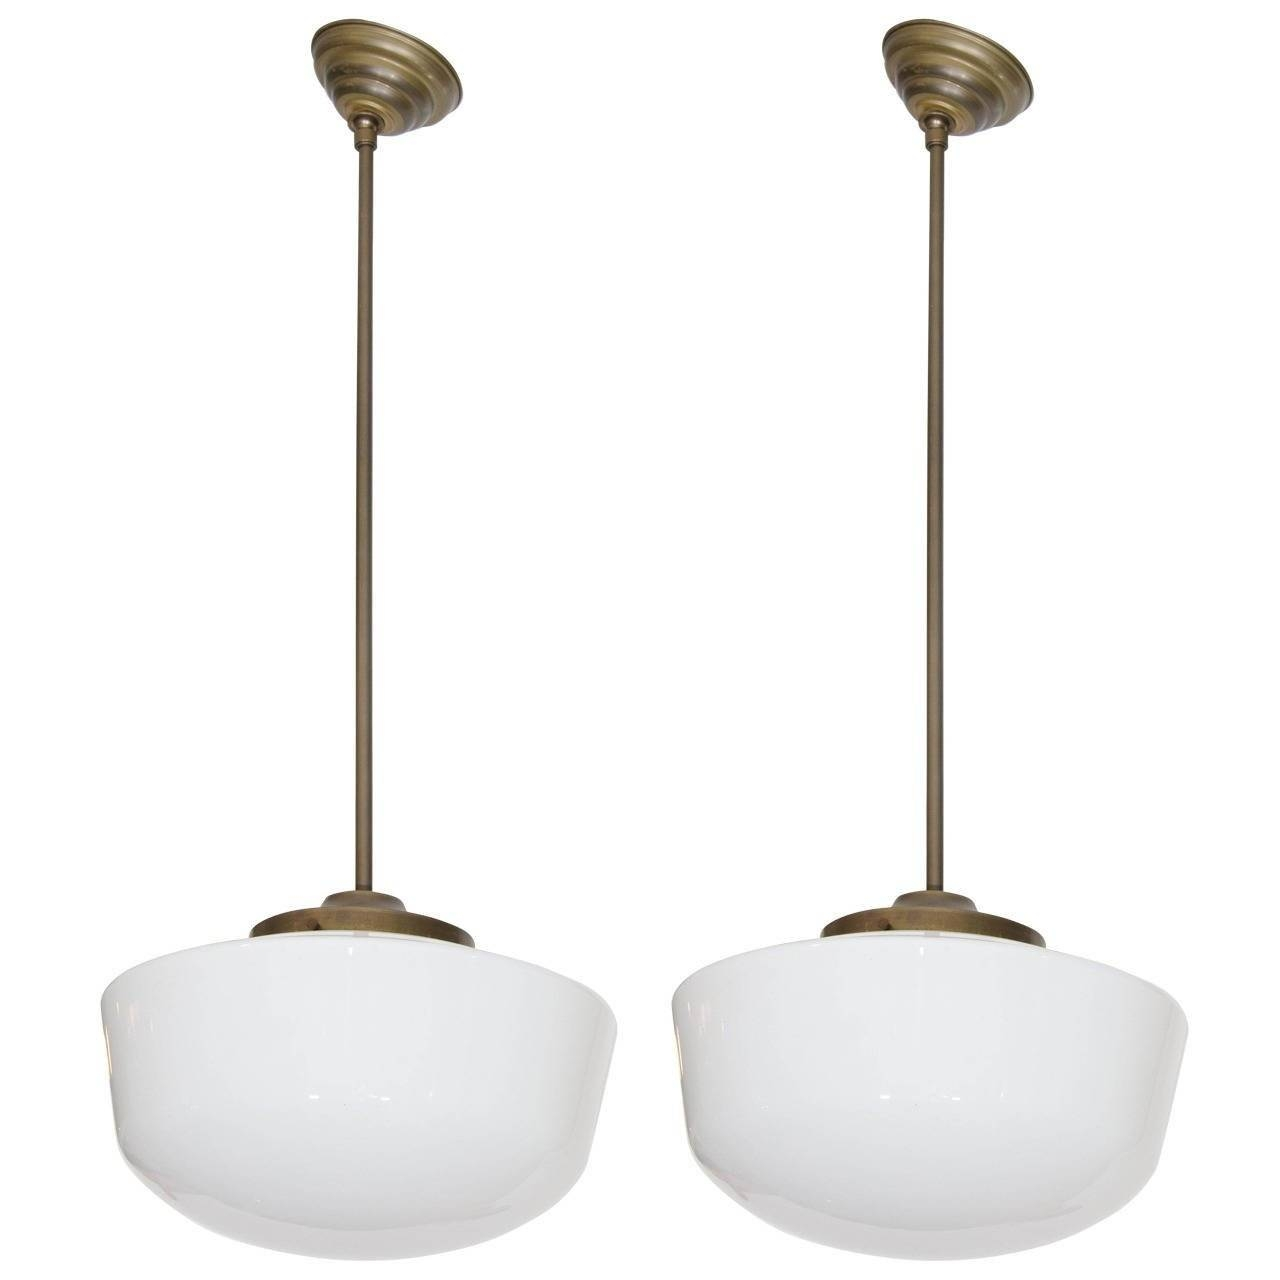 Milk Glass Chandeliers And Pendants - 116 For Sale At 1Stdibs pertaining to Milk Glass Pendant Lights Fixtures (Image 10 of 15)